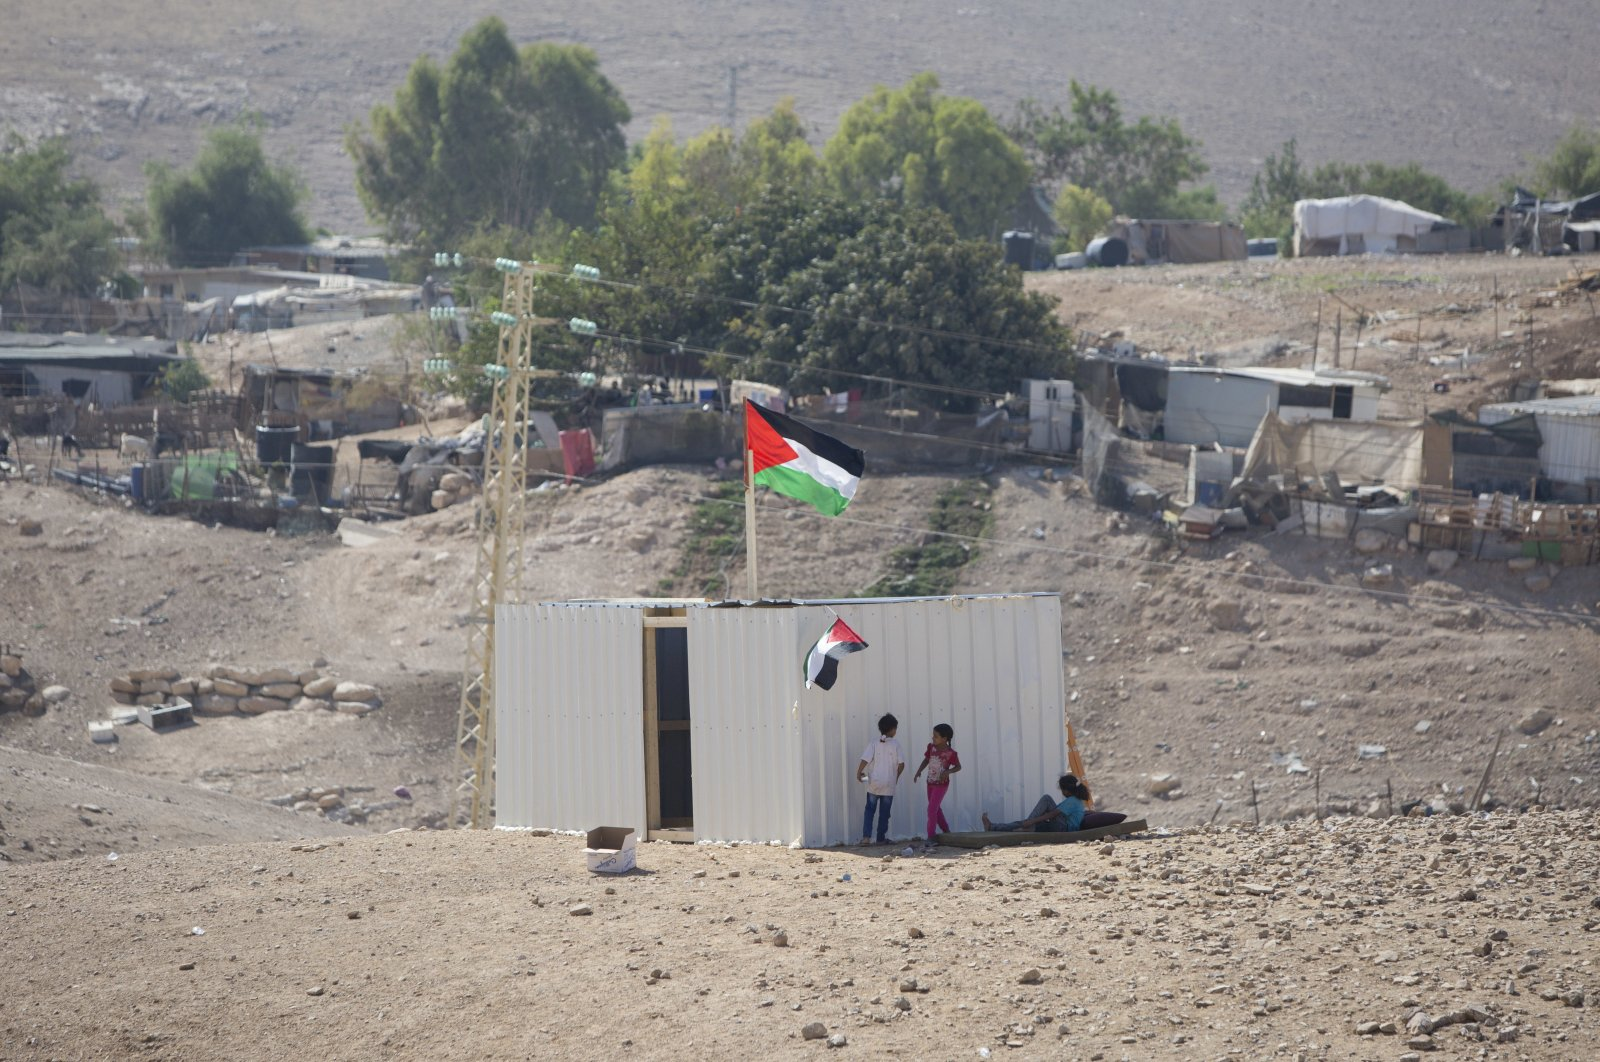 Palestinian girls sit by a newly constructed shed in the West Bank Bedouin community of Khan al-Ahmar, Sept. 11, 2018. (AP Photo)